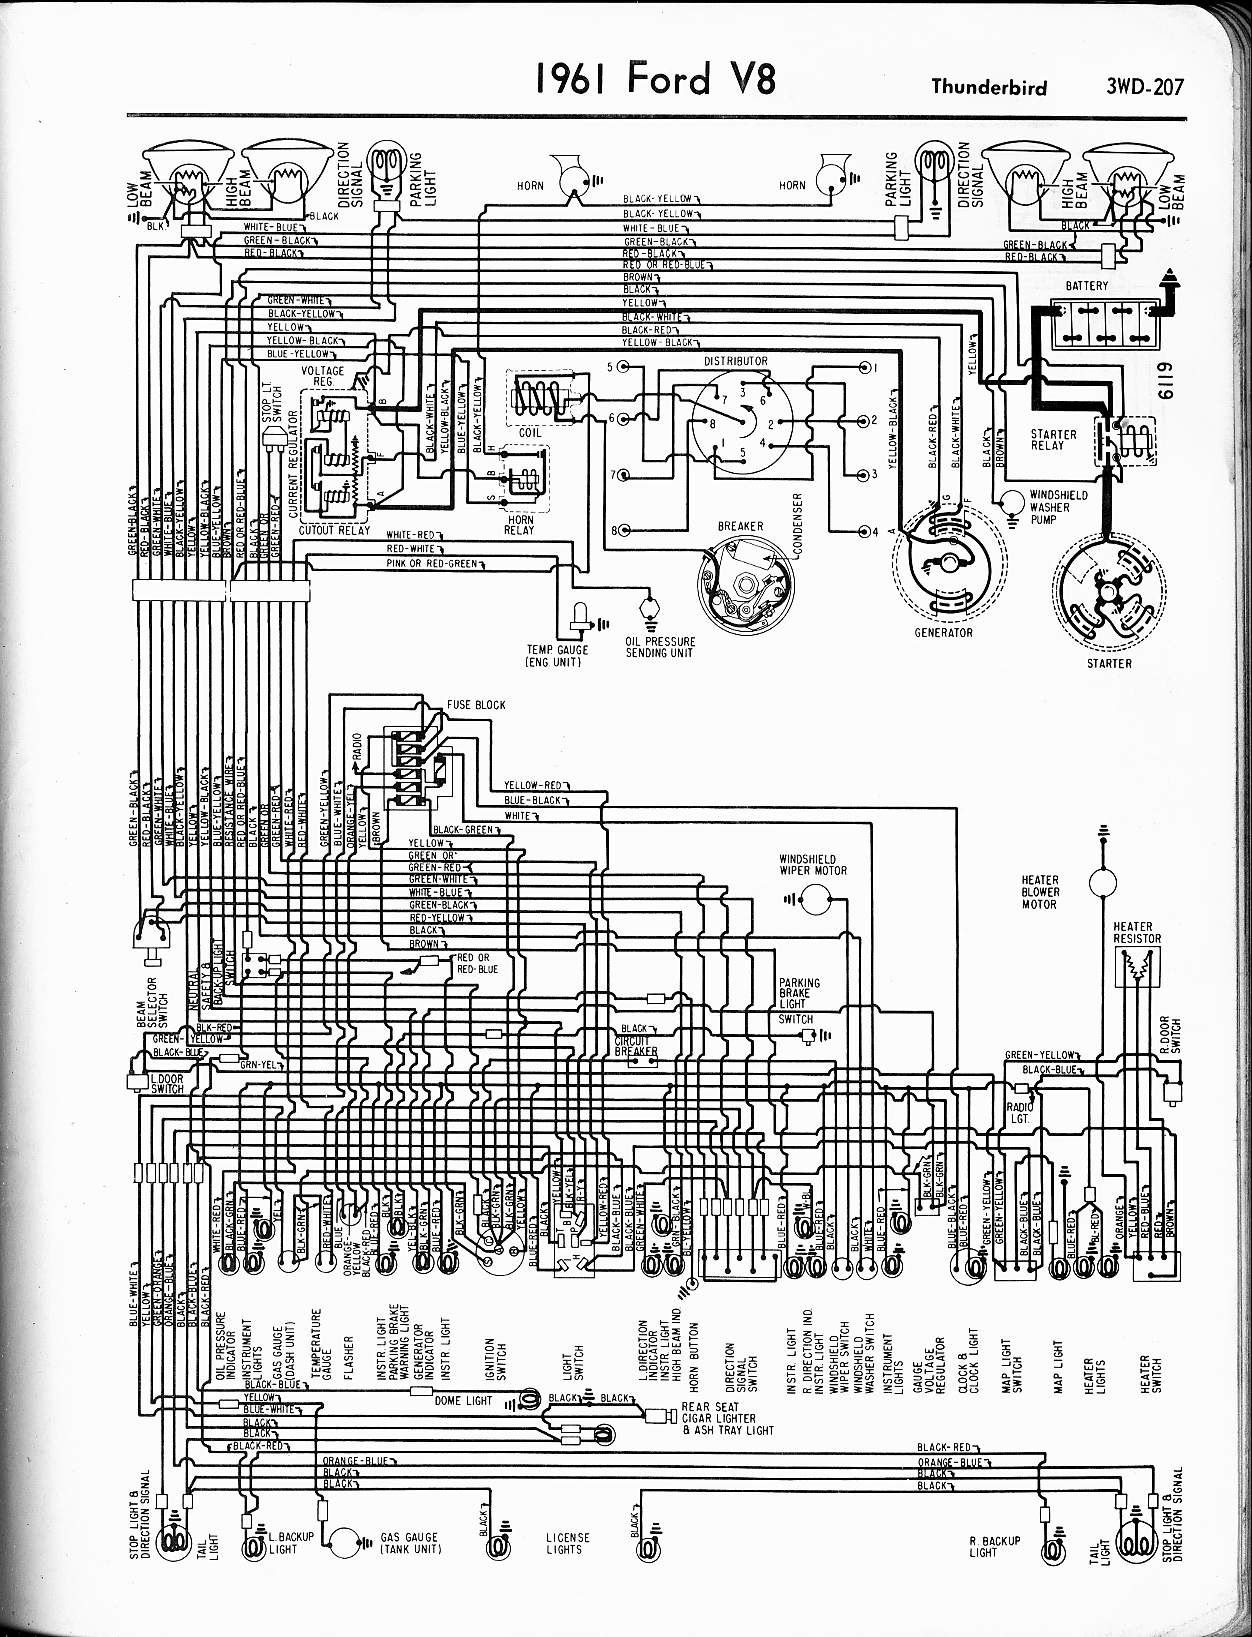 MWire5765 207 57 65 ford wiring diagrams ford wiring harness diagrams at gsmx.co